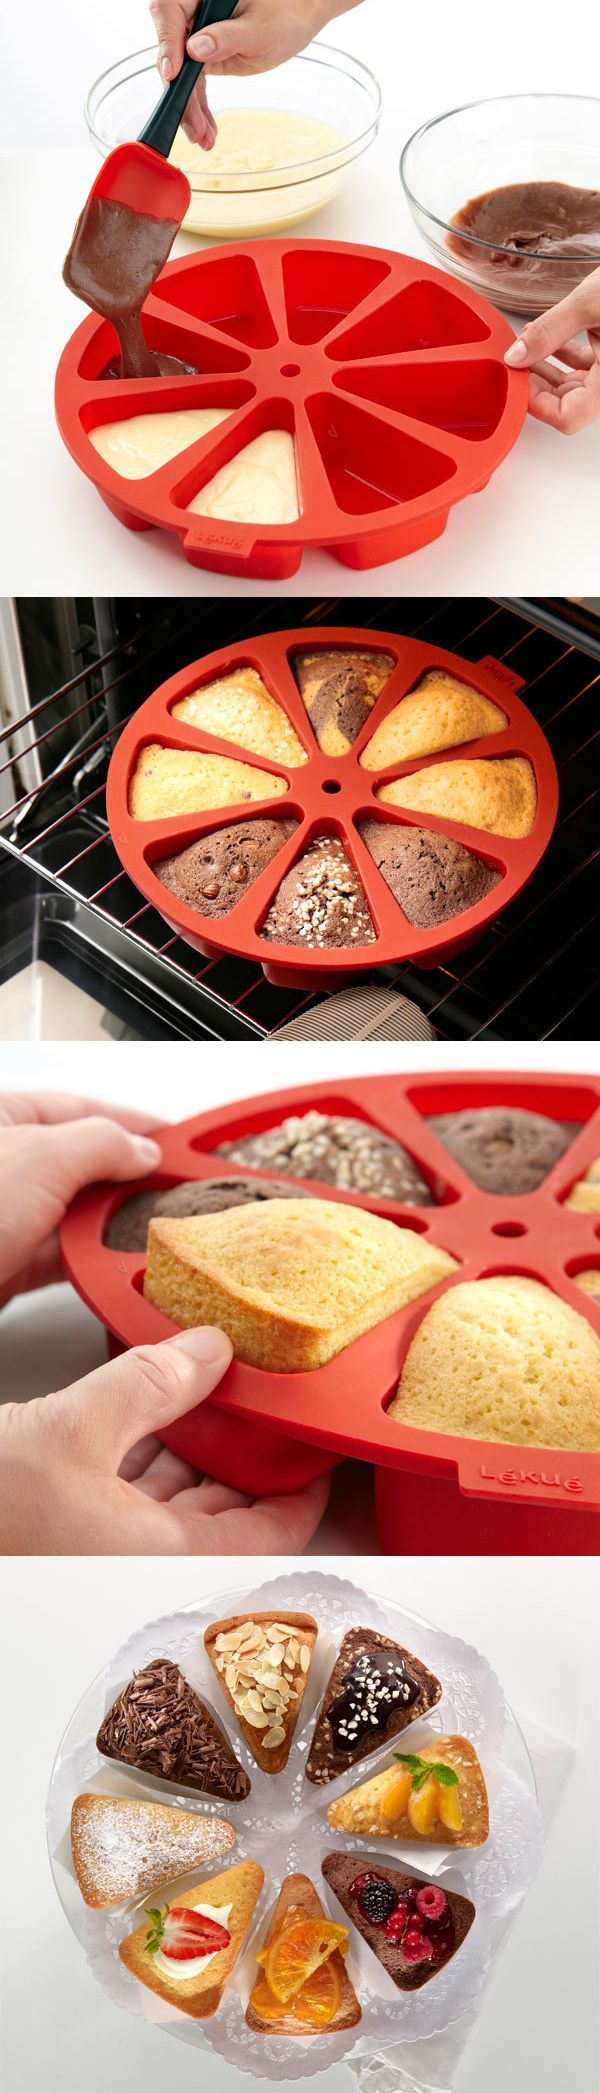 Cake mold for individual slices. Perfect for desserts and cornbread!